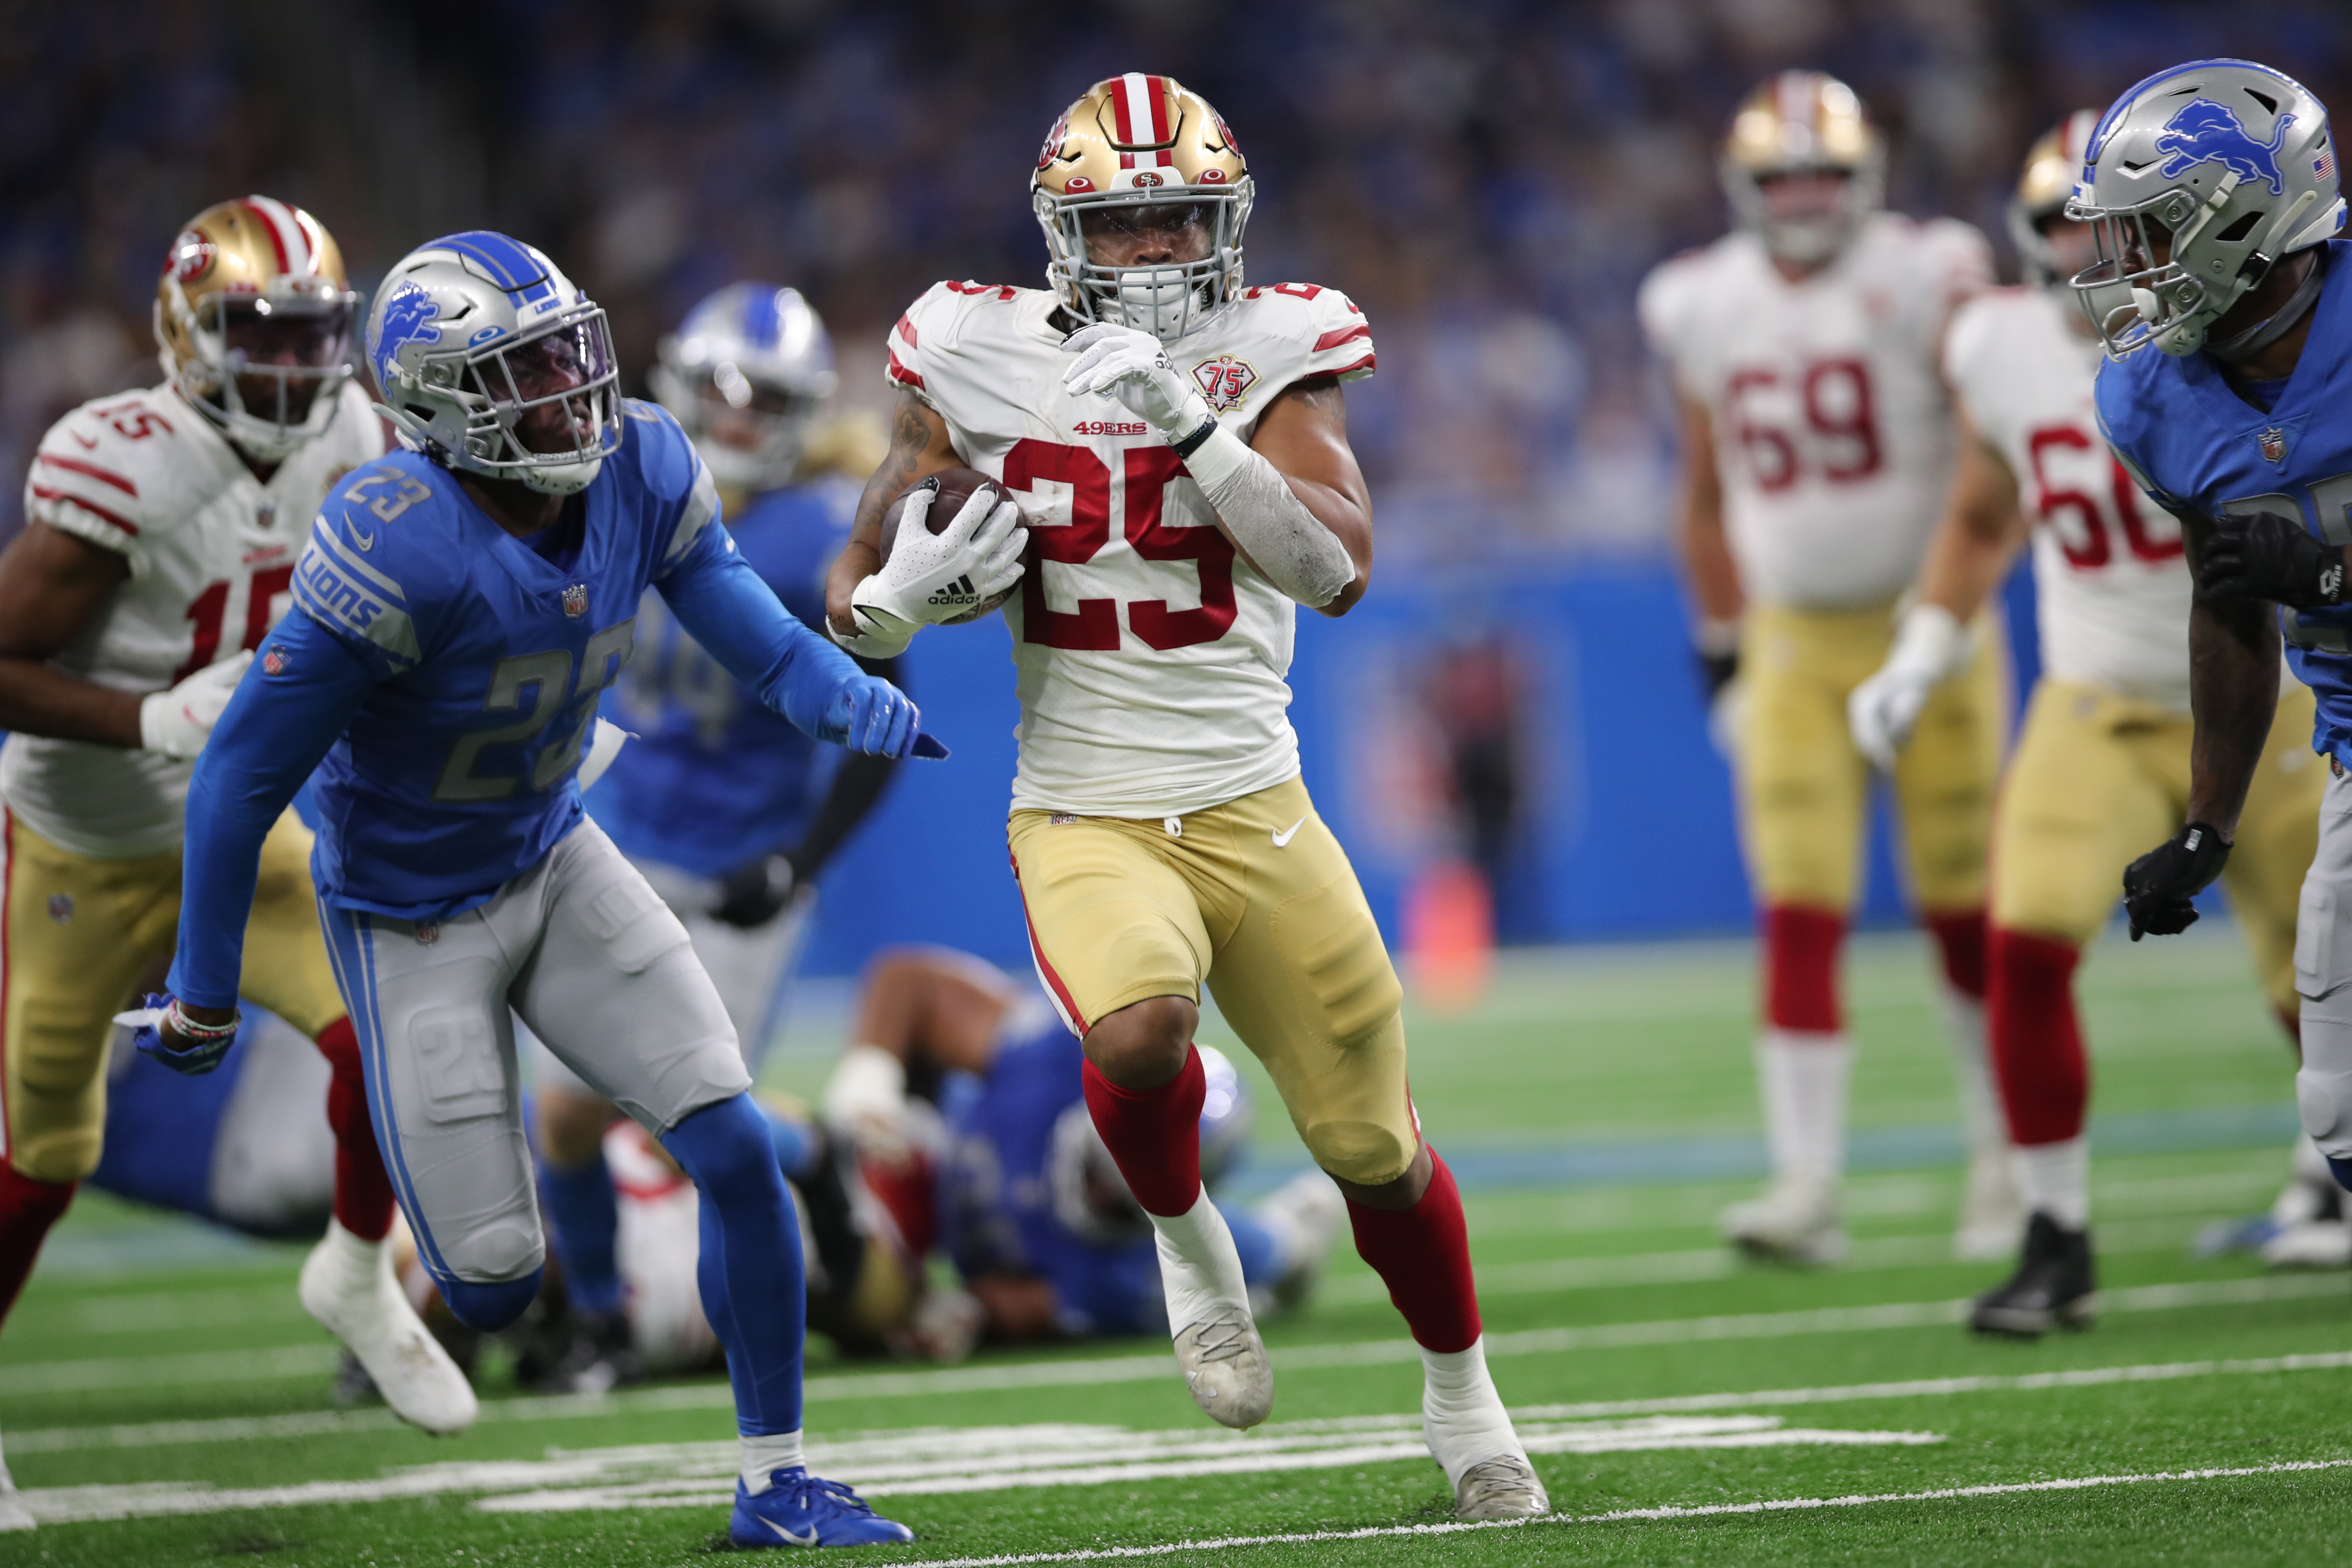 Elijah Mitchell #25 of the San Francisco 49ers rushes for a 38-yard touchdown during the game against the Detroit Lions at Ford Field on September 12, 2021 in Detroit, Michigan. The 49ers defeated the Lions 41-33.